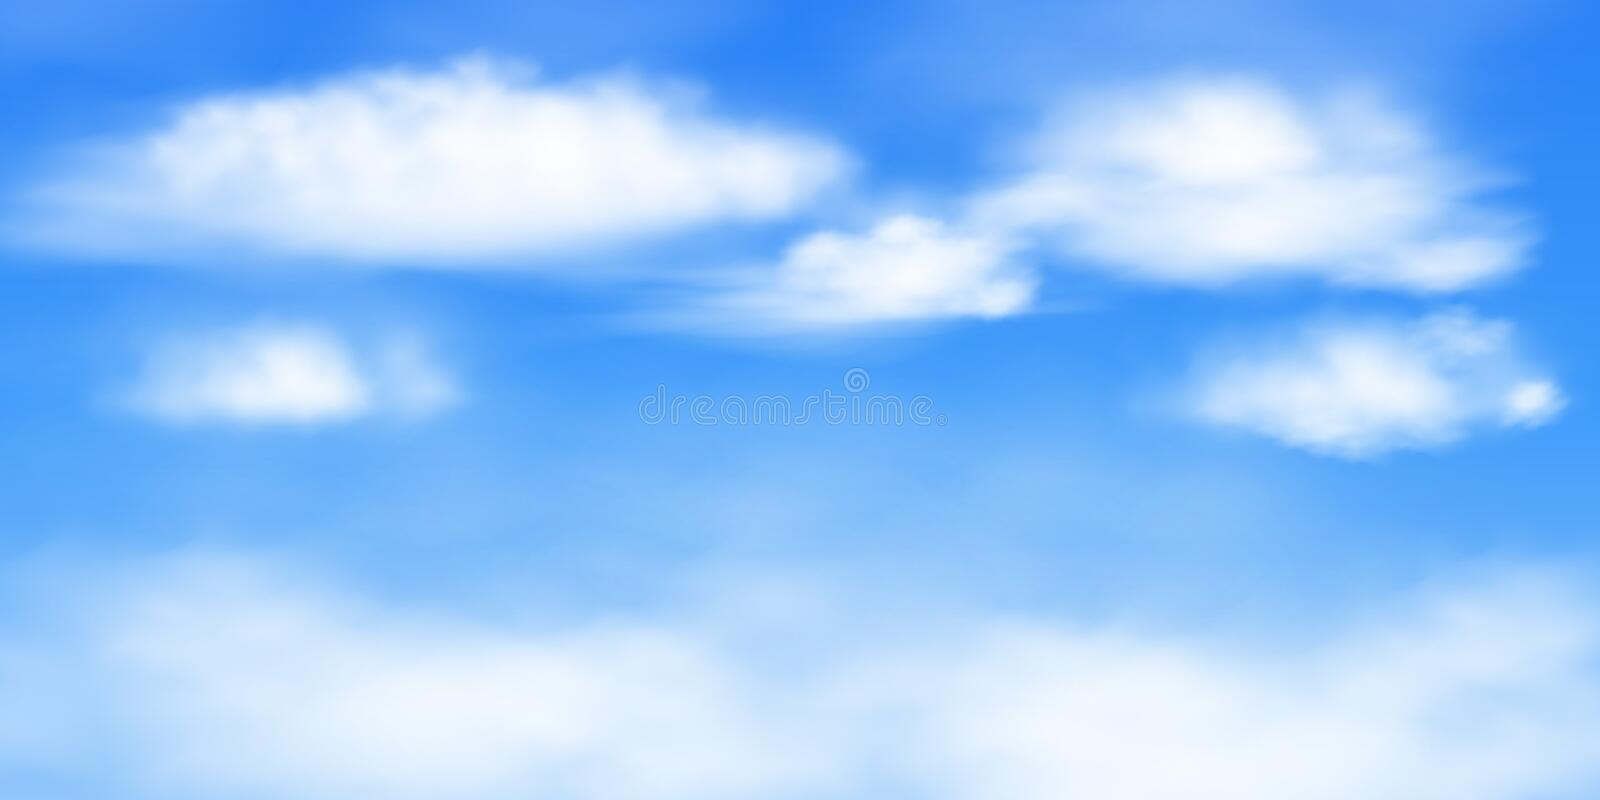 White clouds on a blue background. Image of blue sky with white clouds. Vector background with a 2: 1 aspect ratio. Created using a gradient mesh. EPS 10 vector illustration